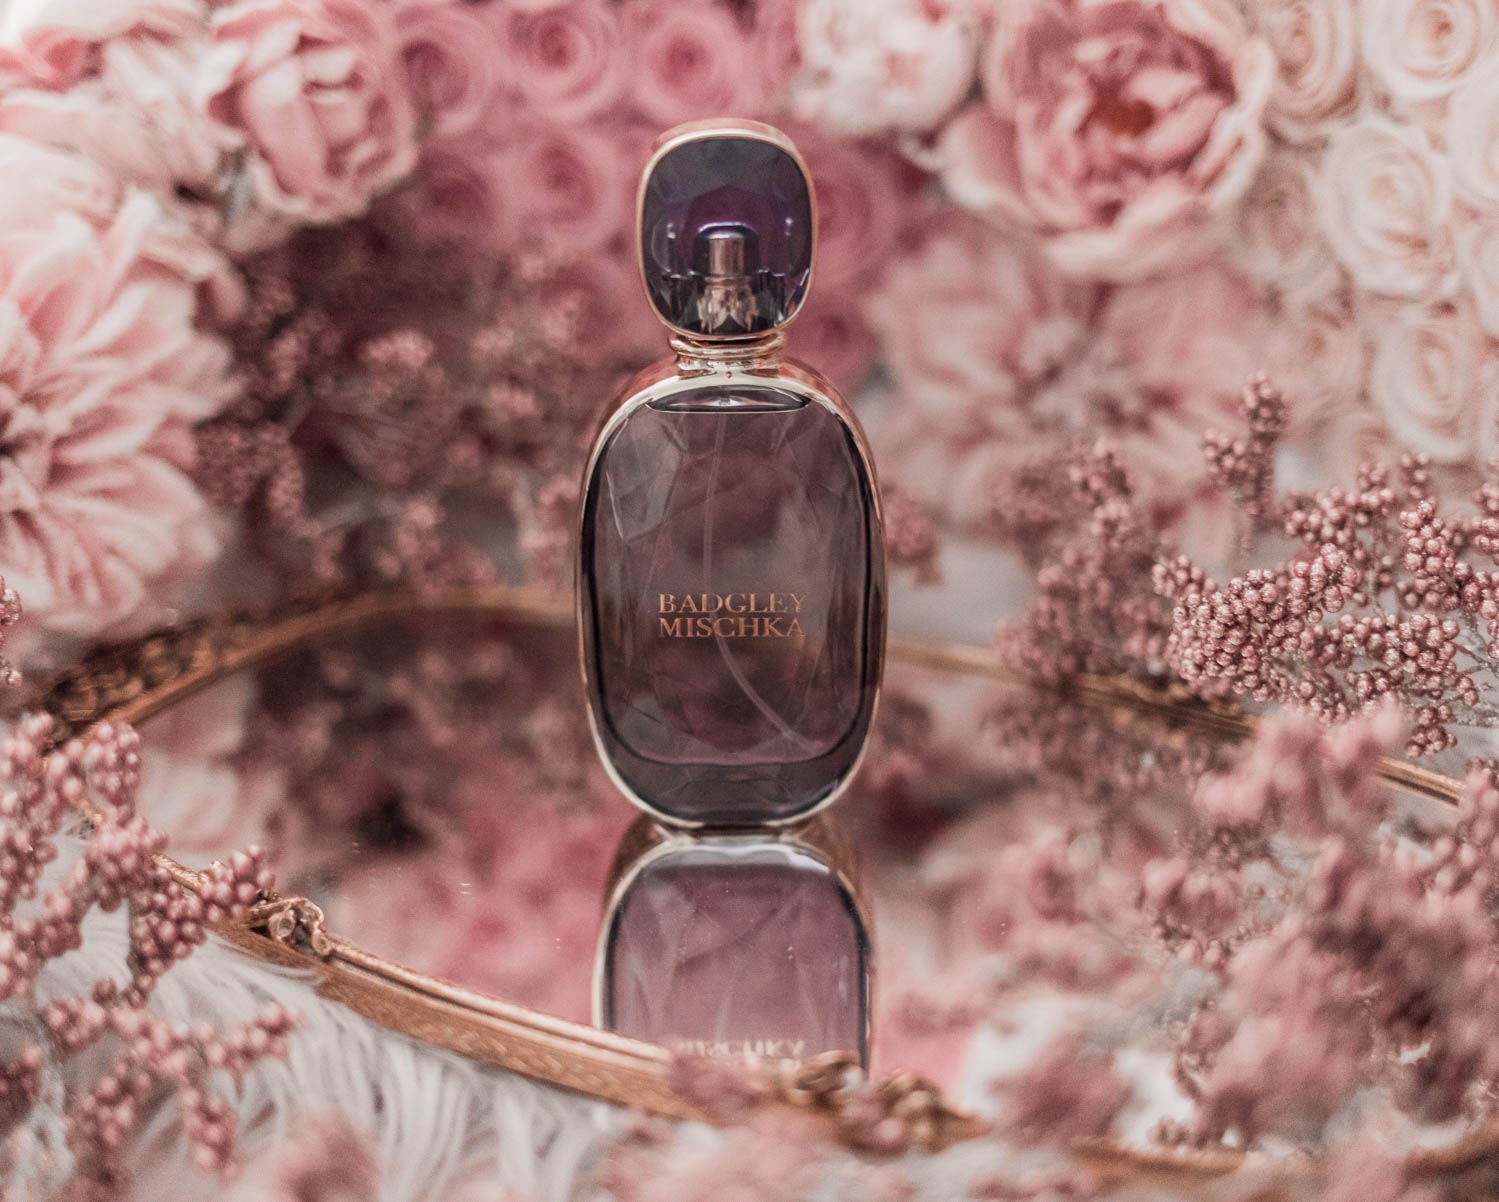 Feminine fashion blogger Elizabeth Hugen of Lizzie in Lace shares the best feminine perfumes and her girly fragrance collection including Badgley Mischka perfume